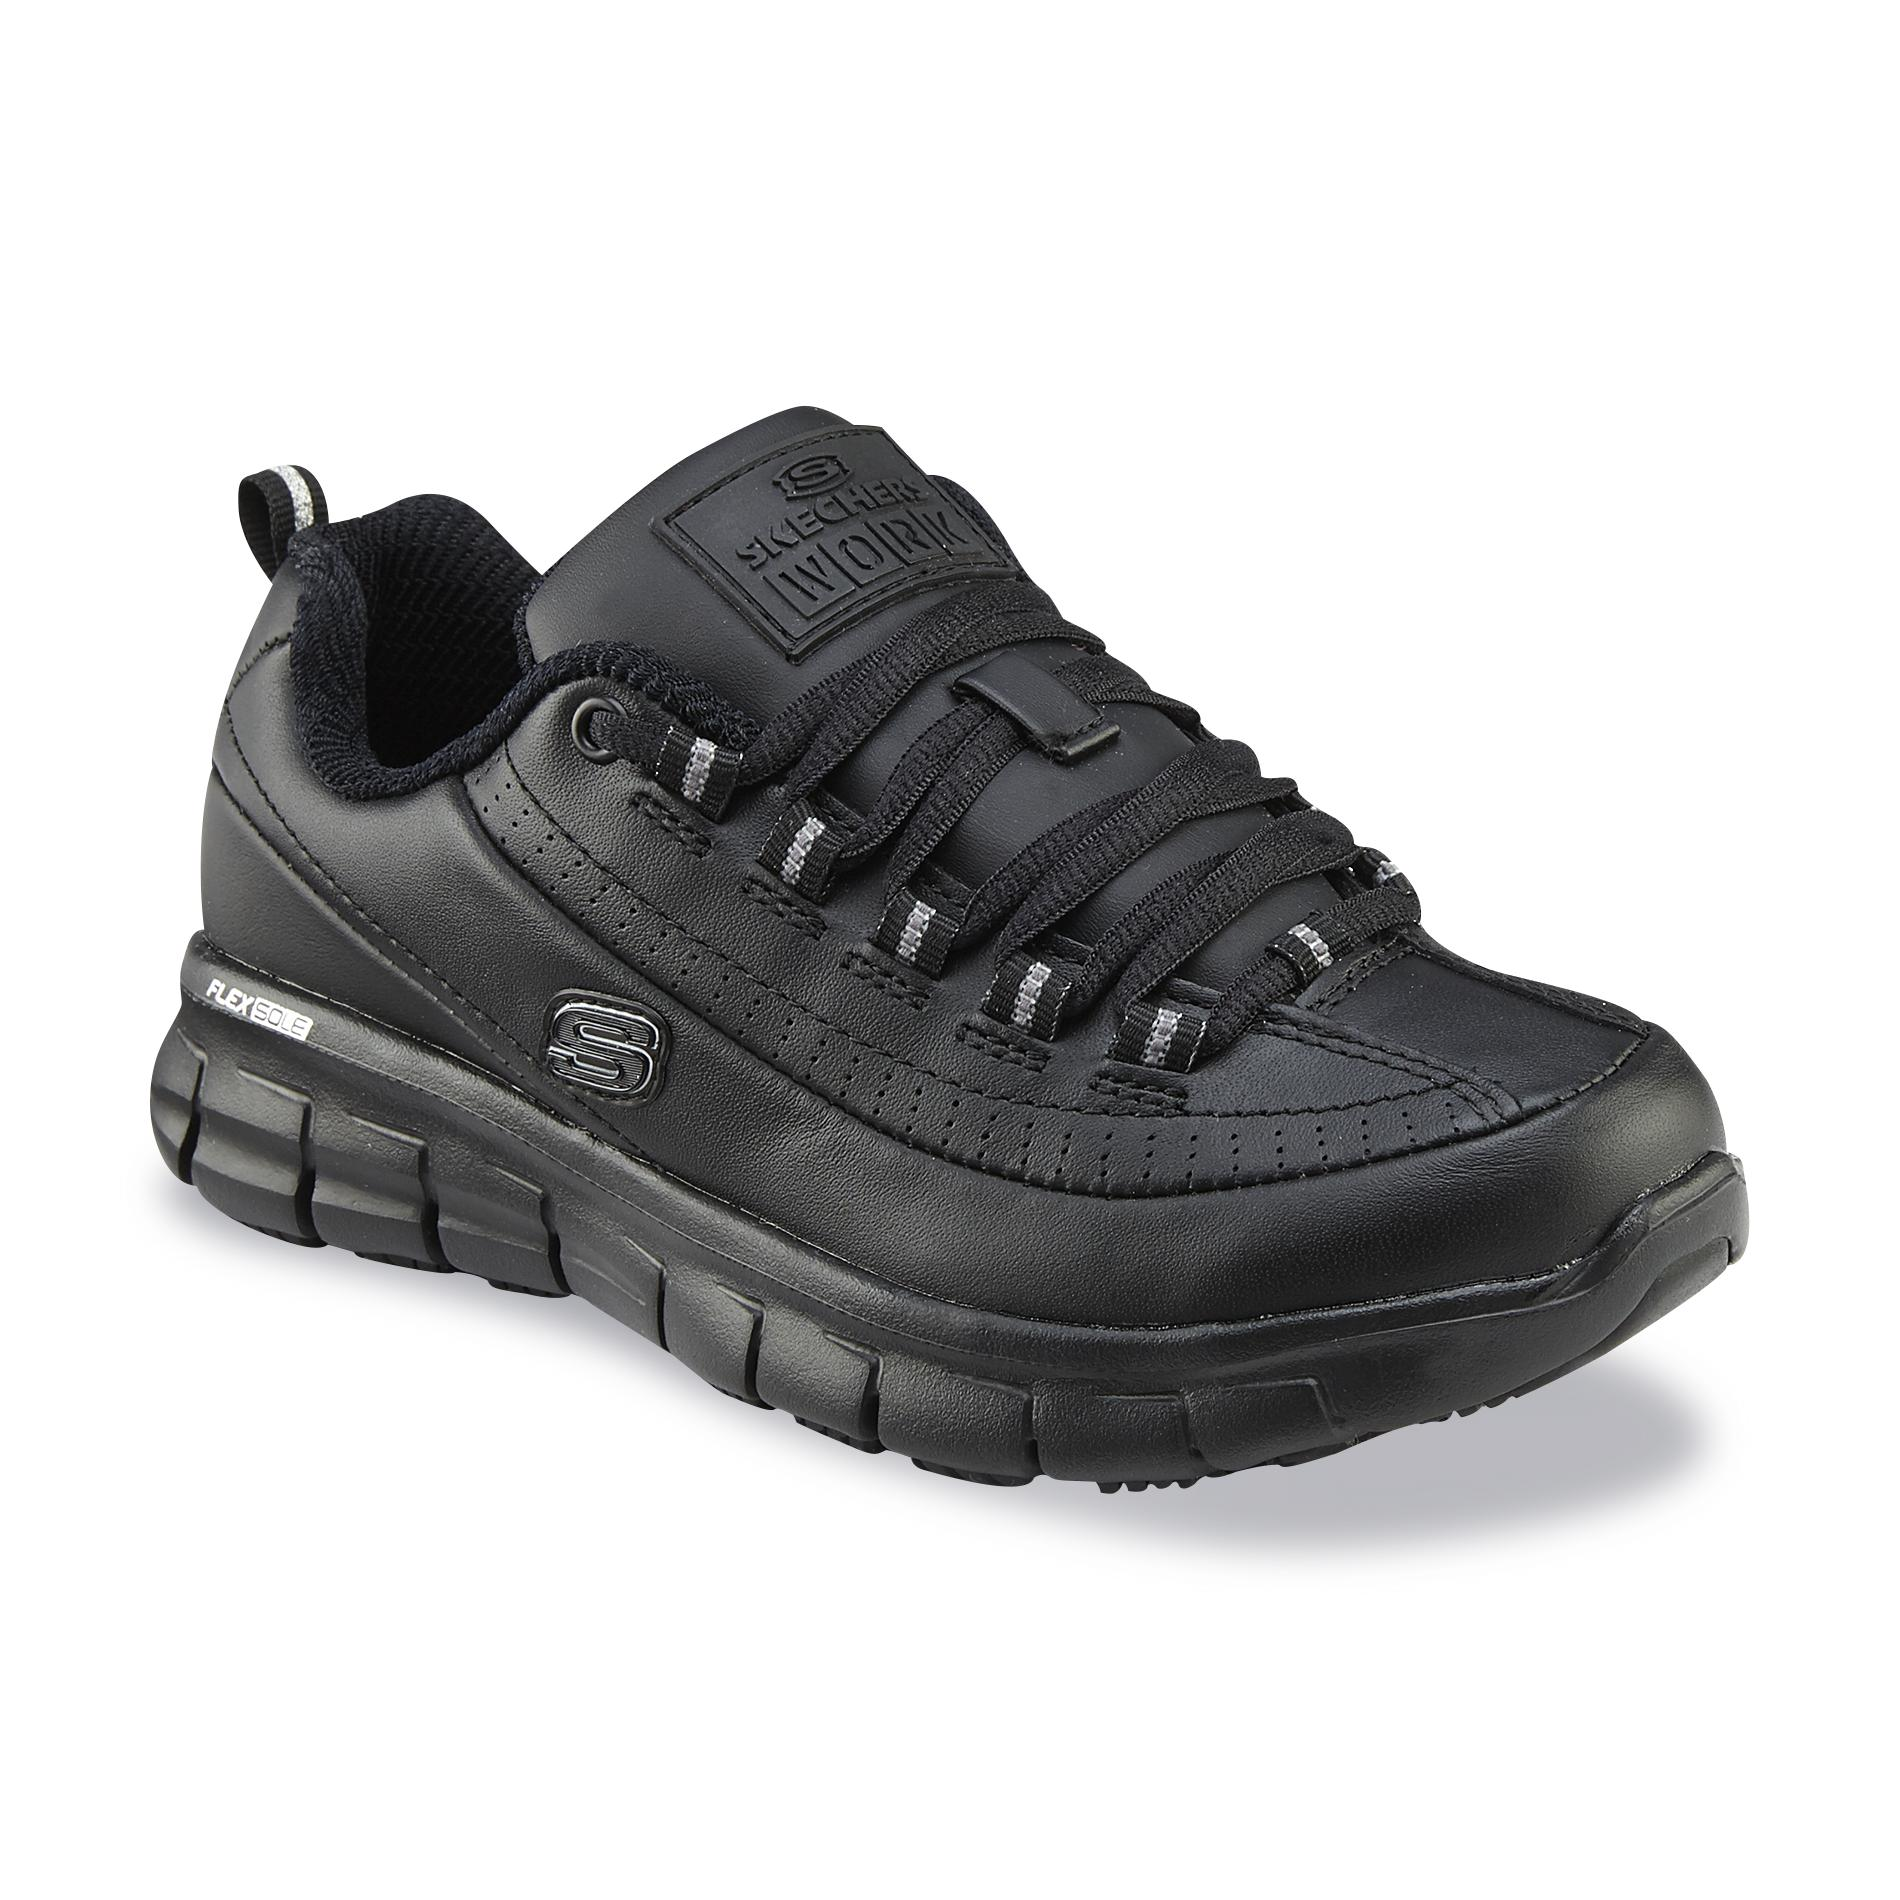 Skechers Women's Trickel Black Work Shoe - Wide Width Available